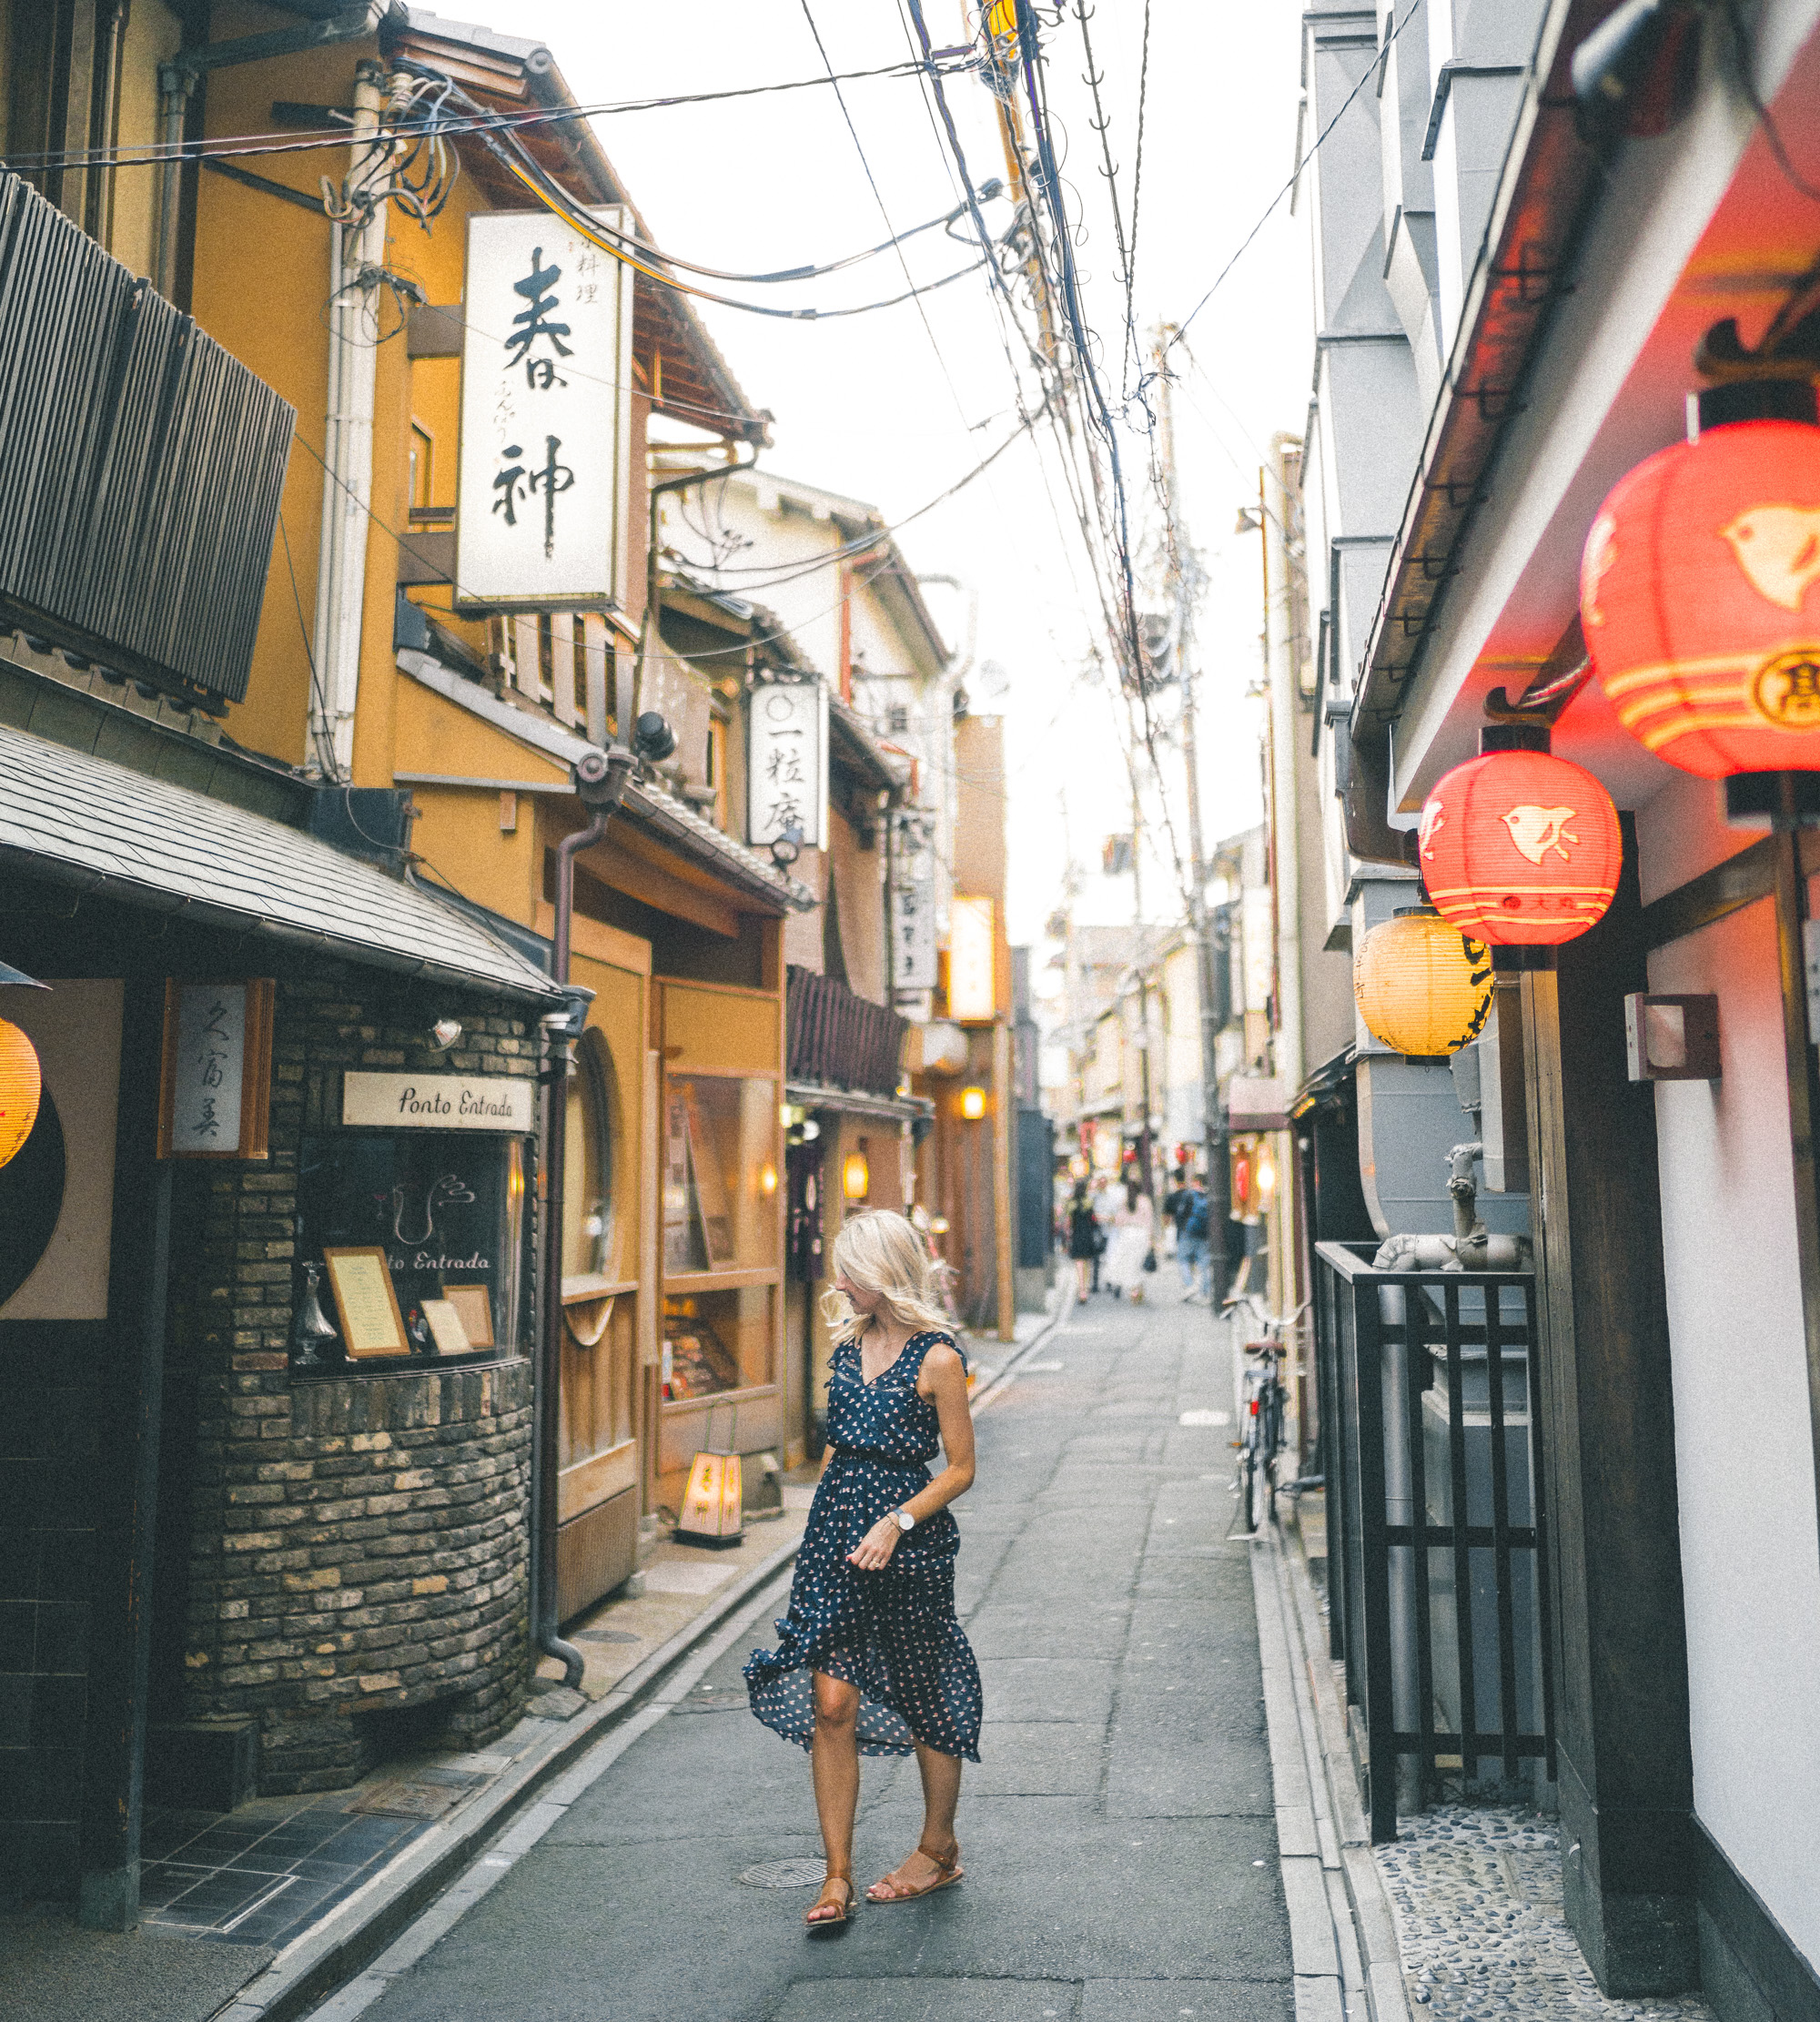 Backstreets of Shijo Dori in Kyoto, Japan | 24 Hour Guide to Kyoto, Japan | 1 Day Guide Kyoto | Kyoto City Guide | Kyoto Travel Itinerary